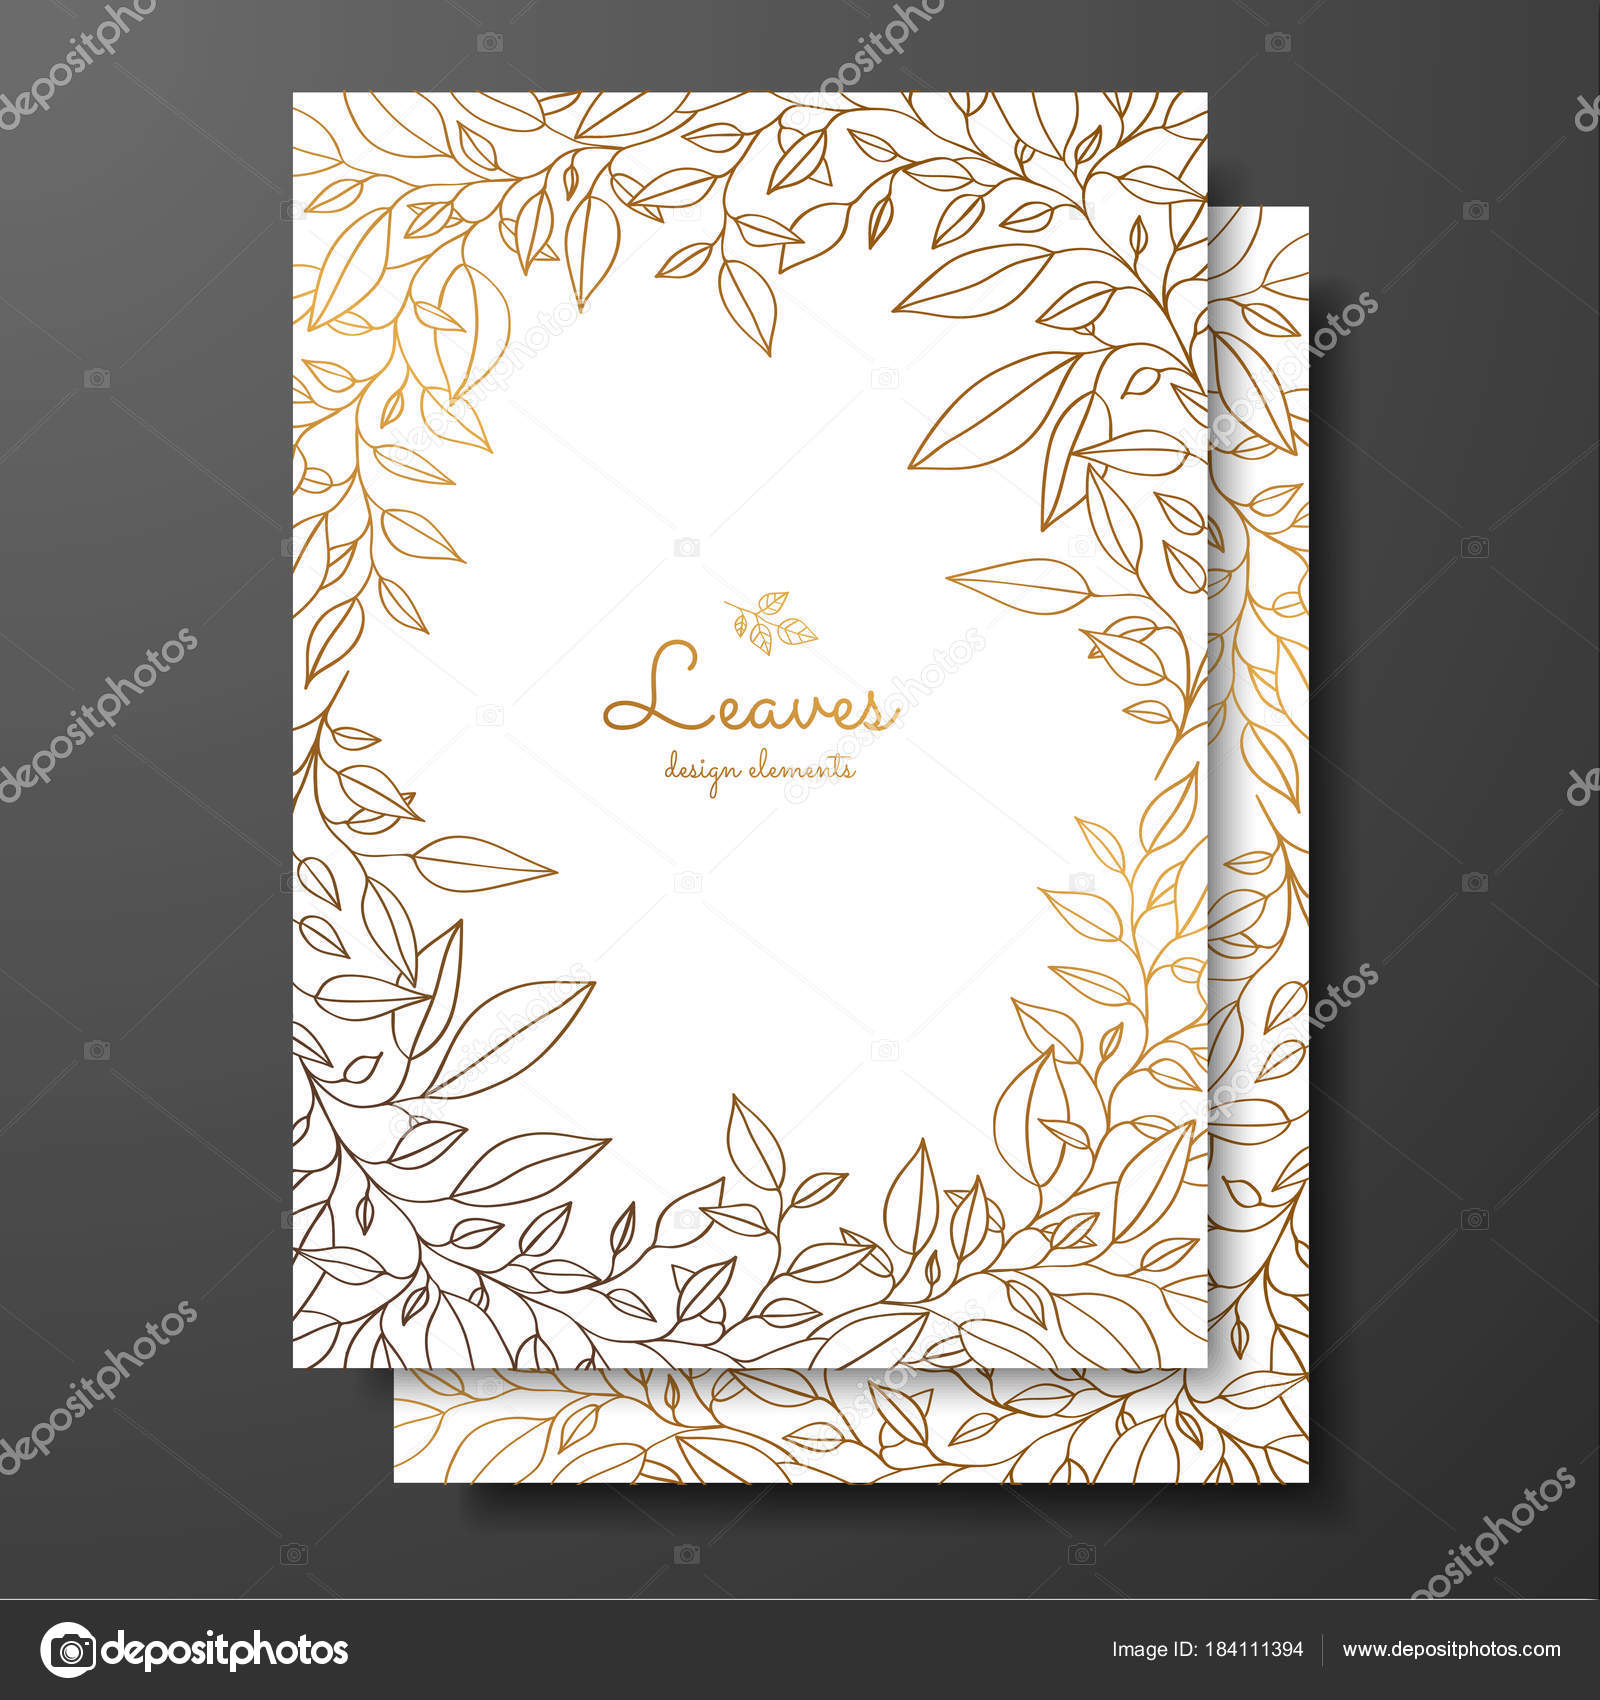 Save the date card wedding invitation template. Design template with ...